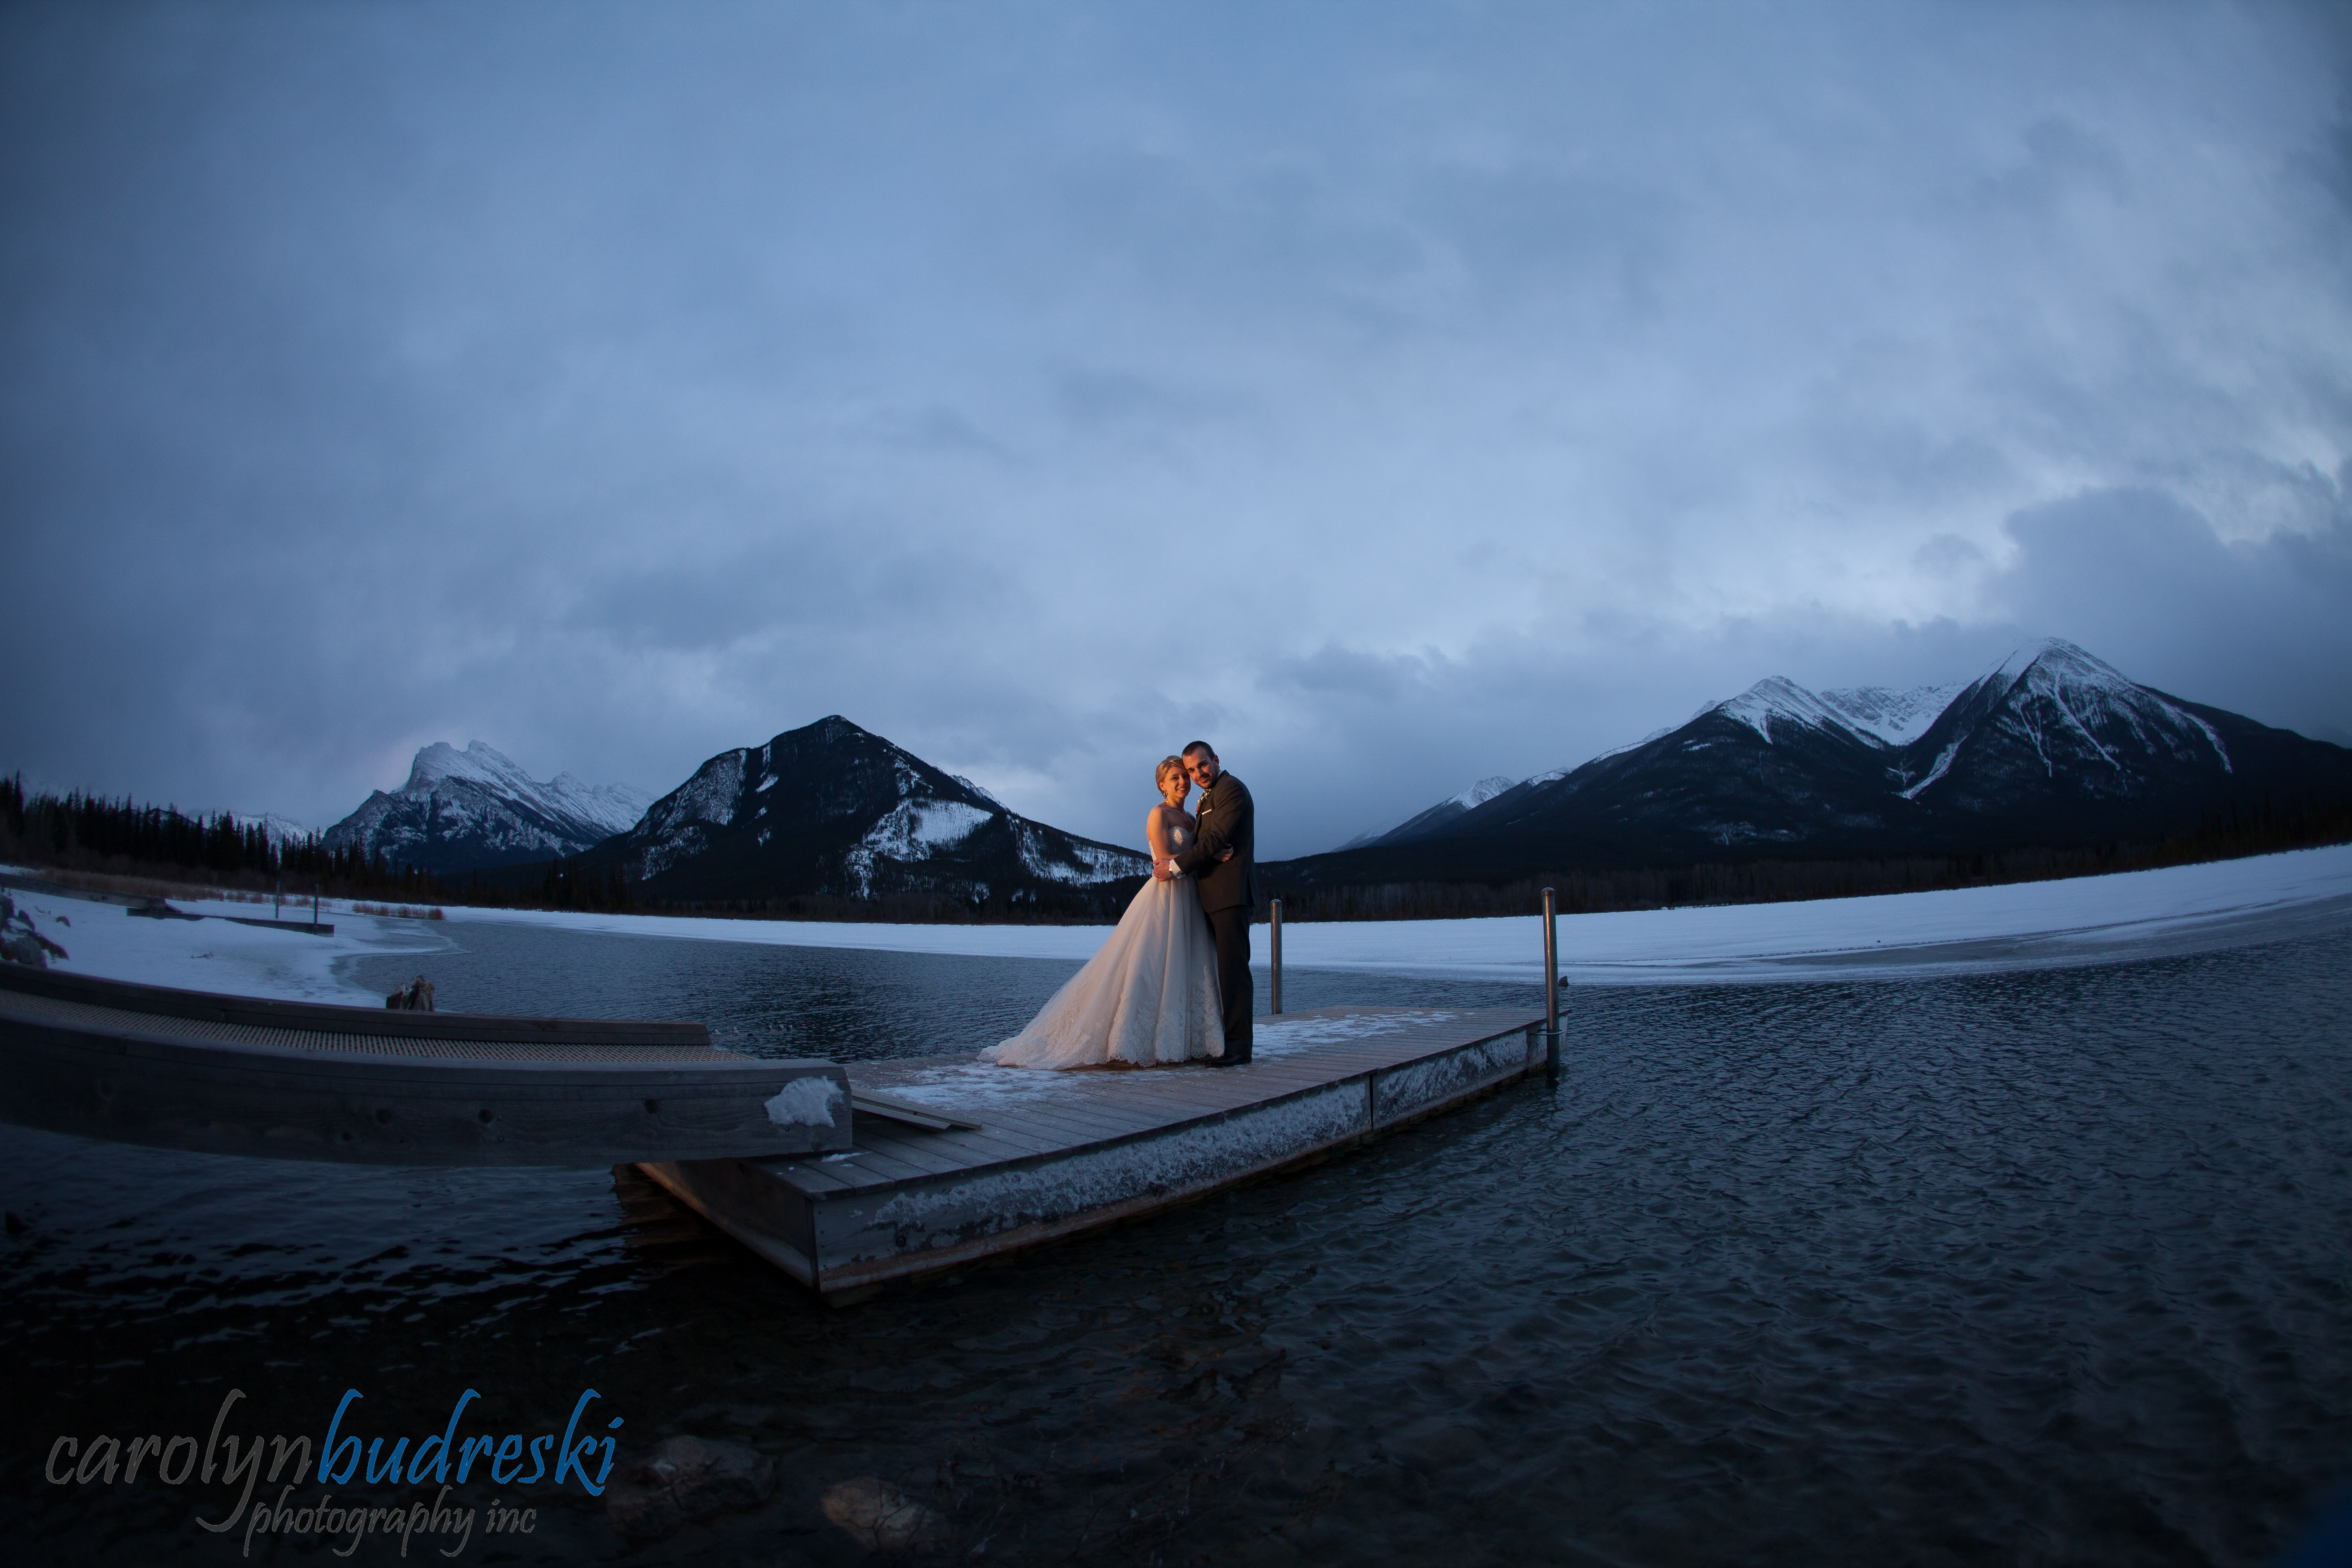 banff night wedding photography